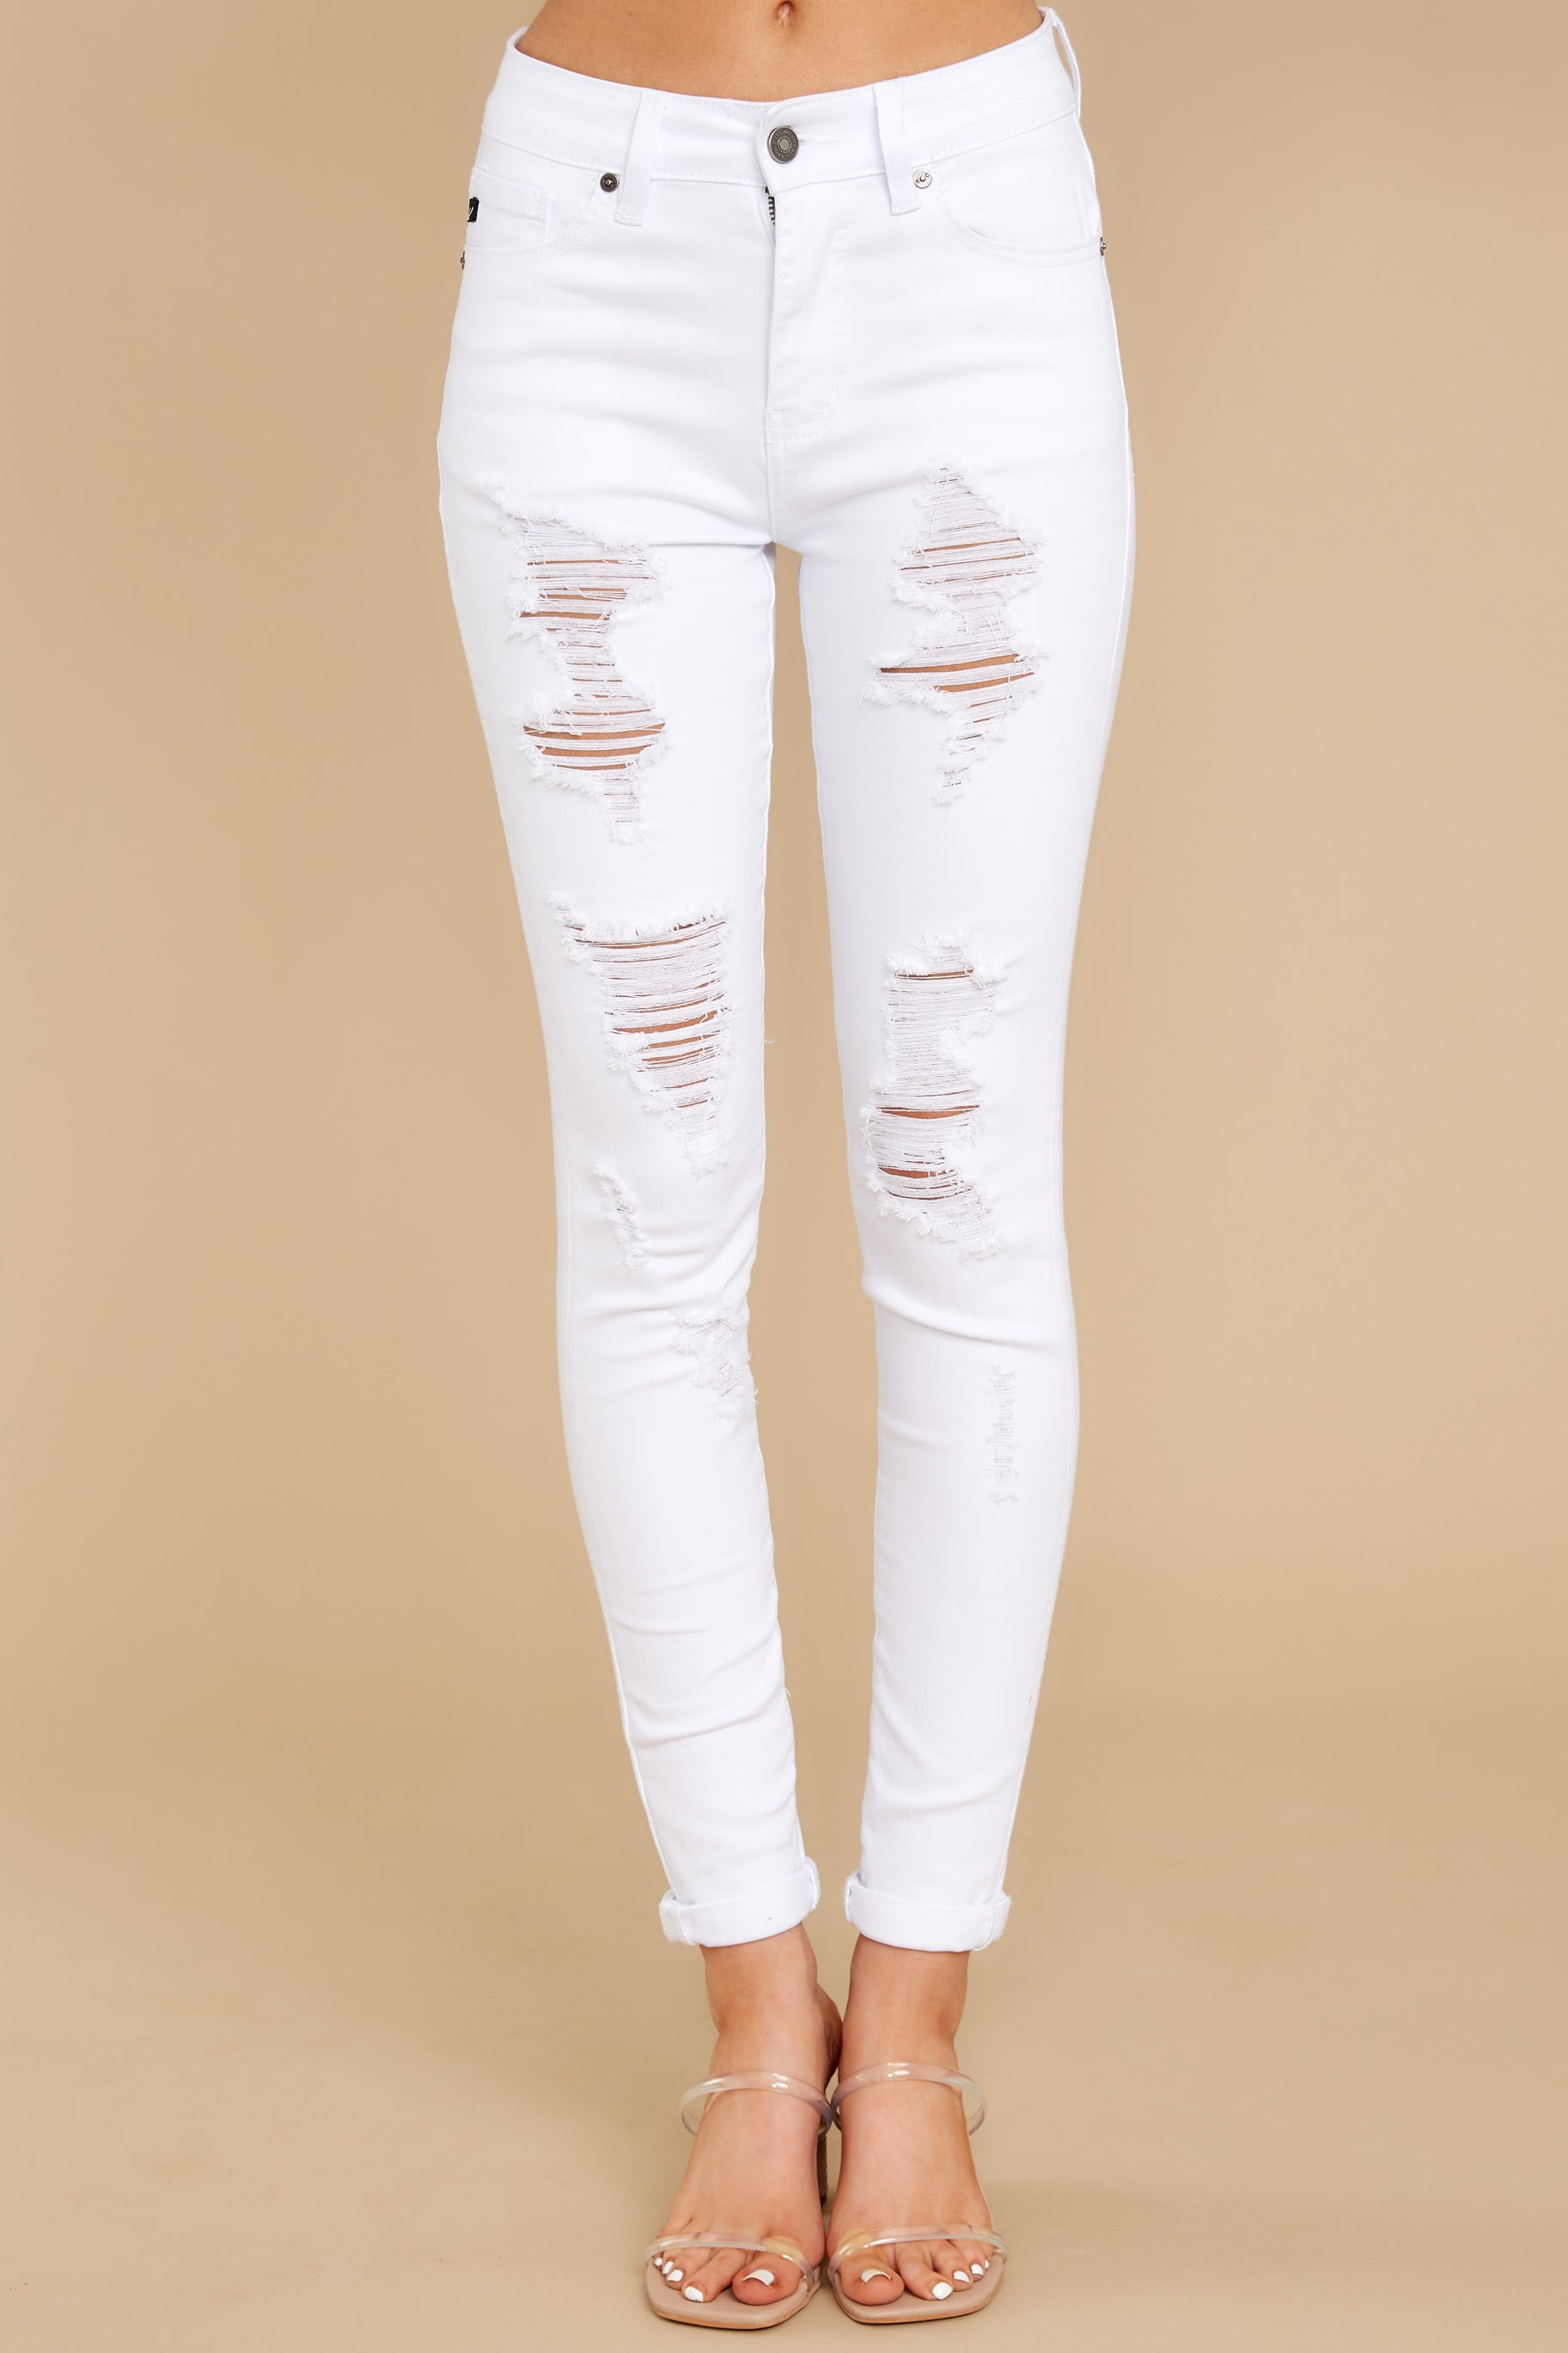 4 Told You White Distressed Skinny Jeans at reddress.com